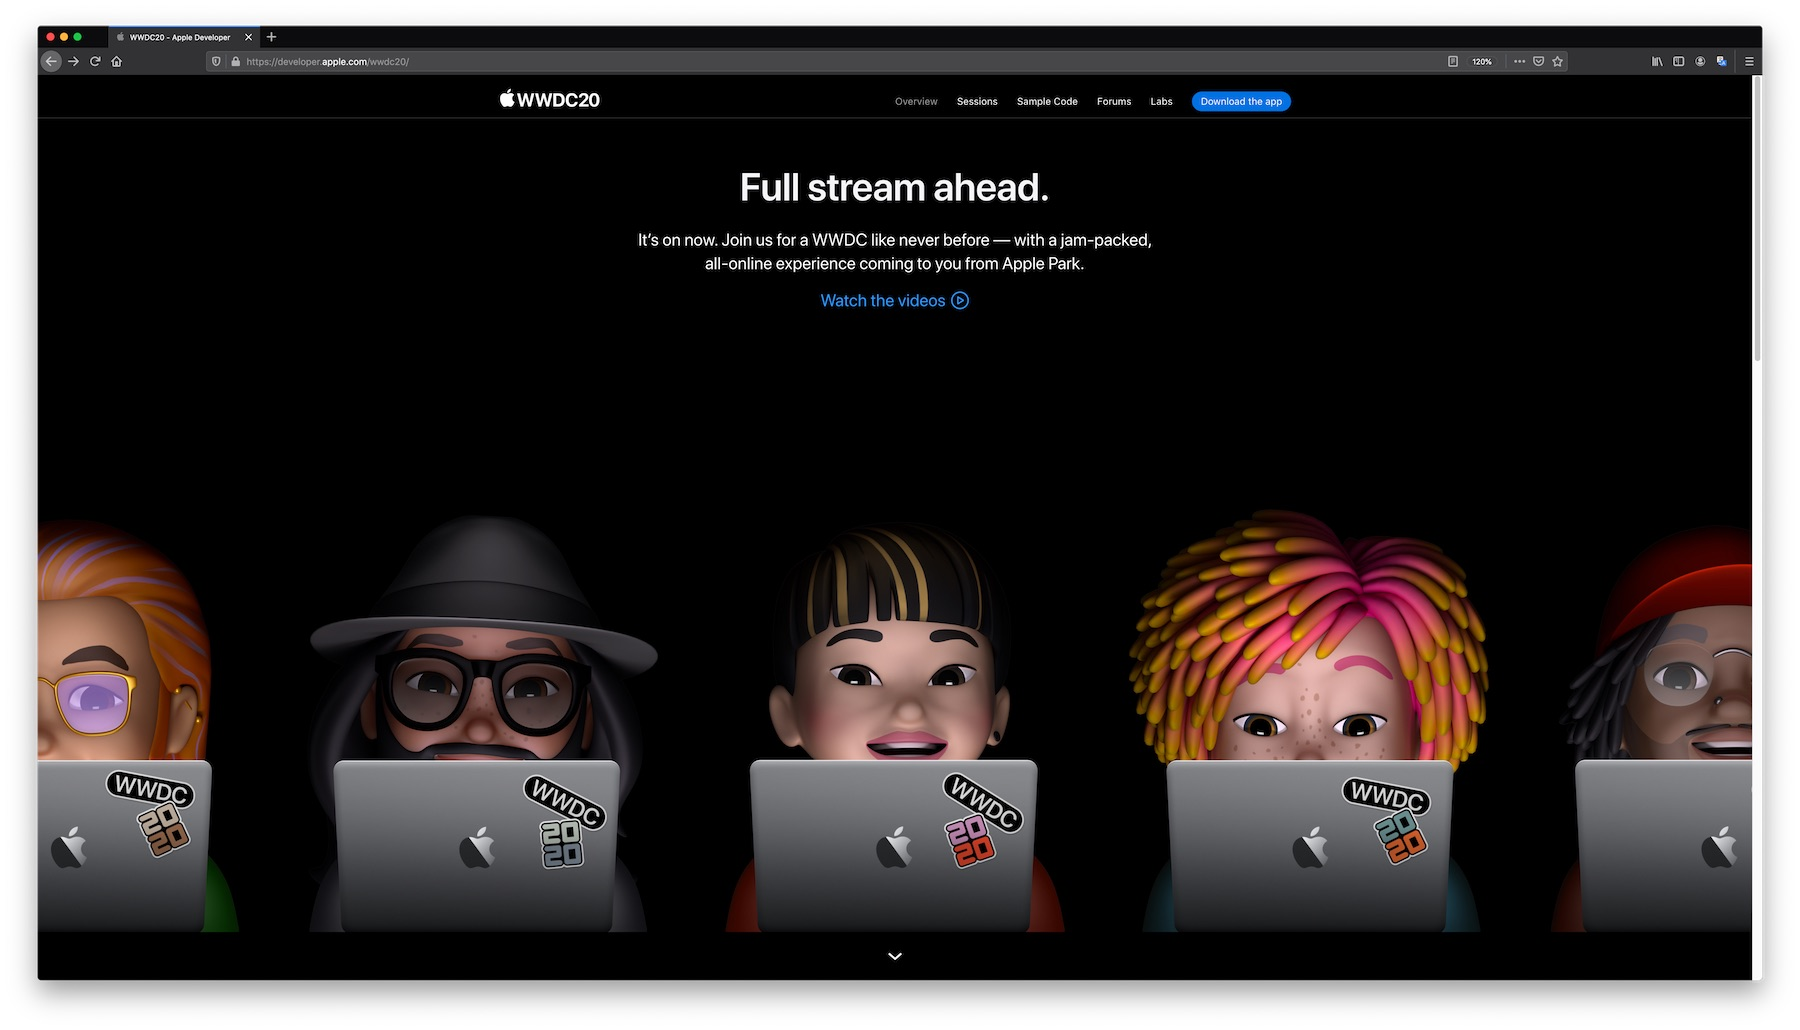 Apple Online-Messe WWDC Online-Live-Event